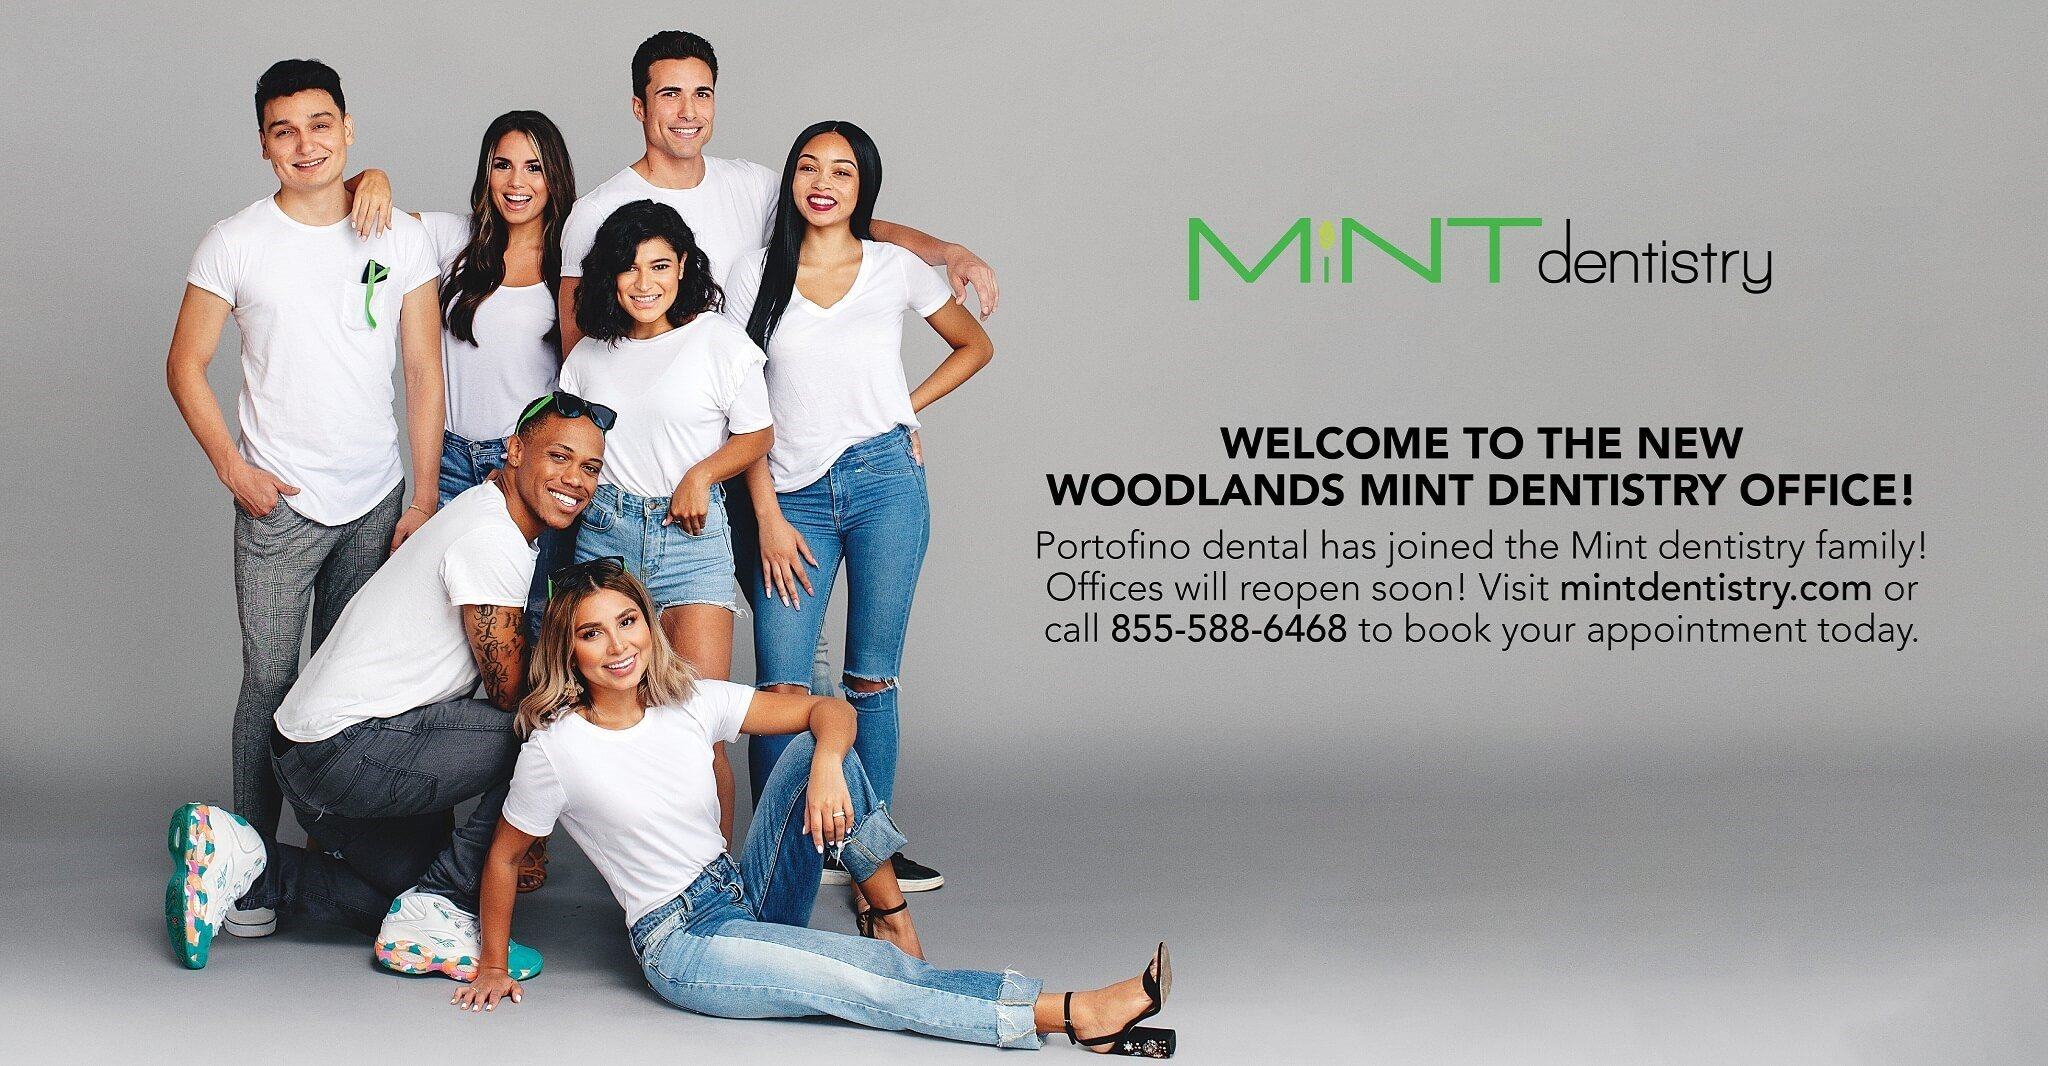 Welcome to MINT Woodlands